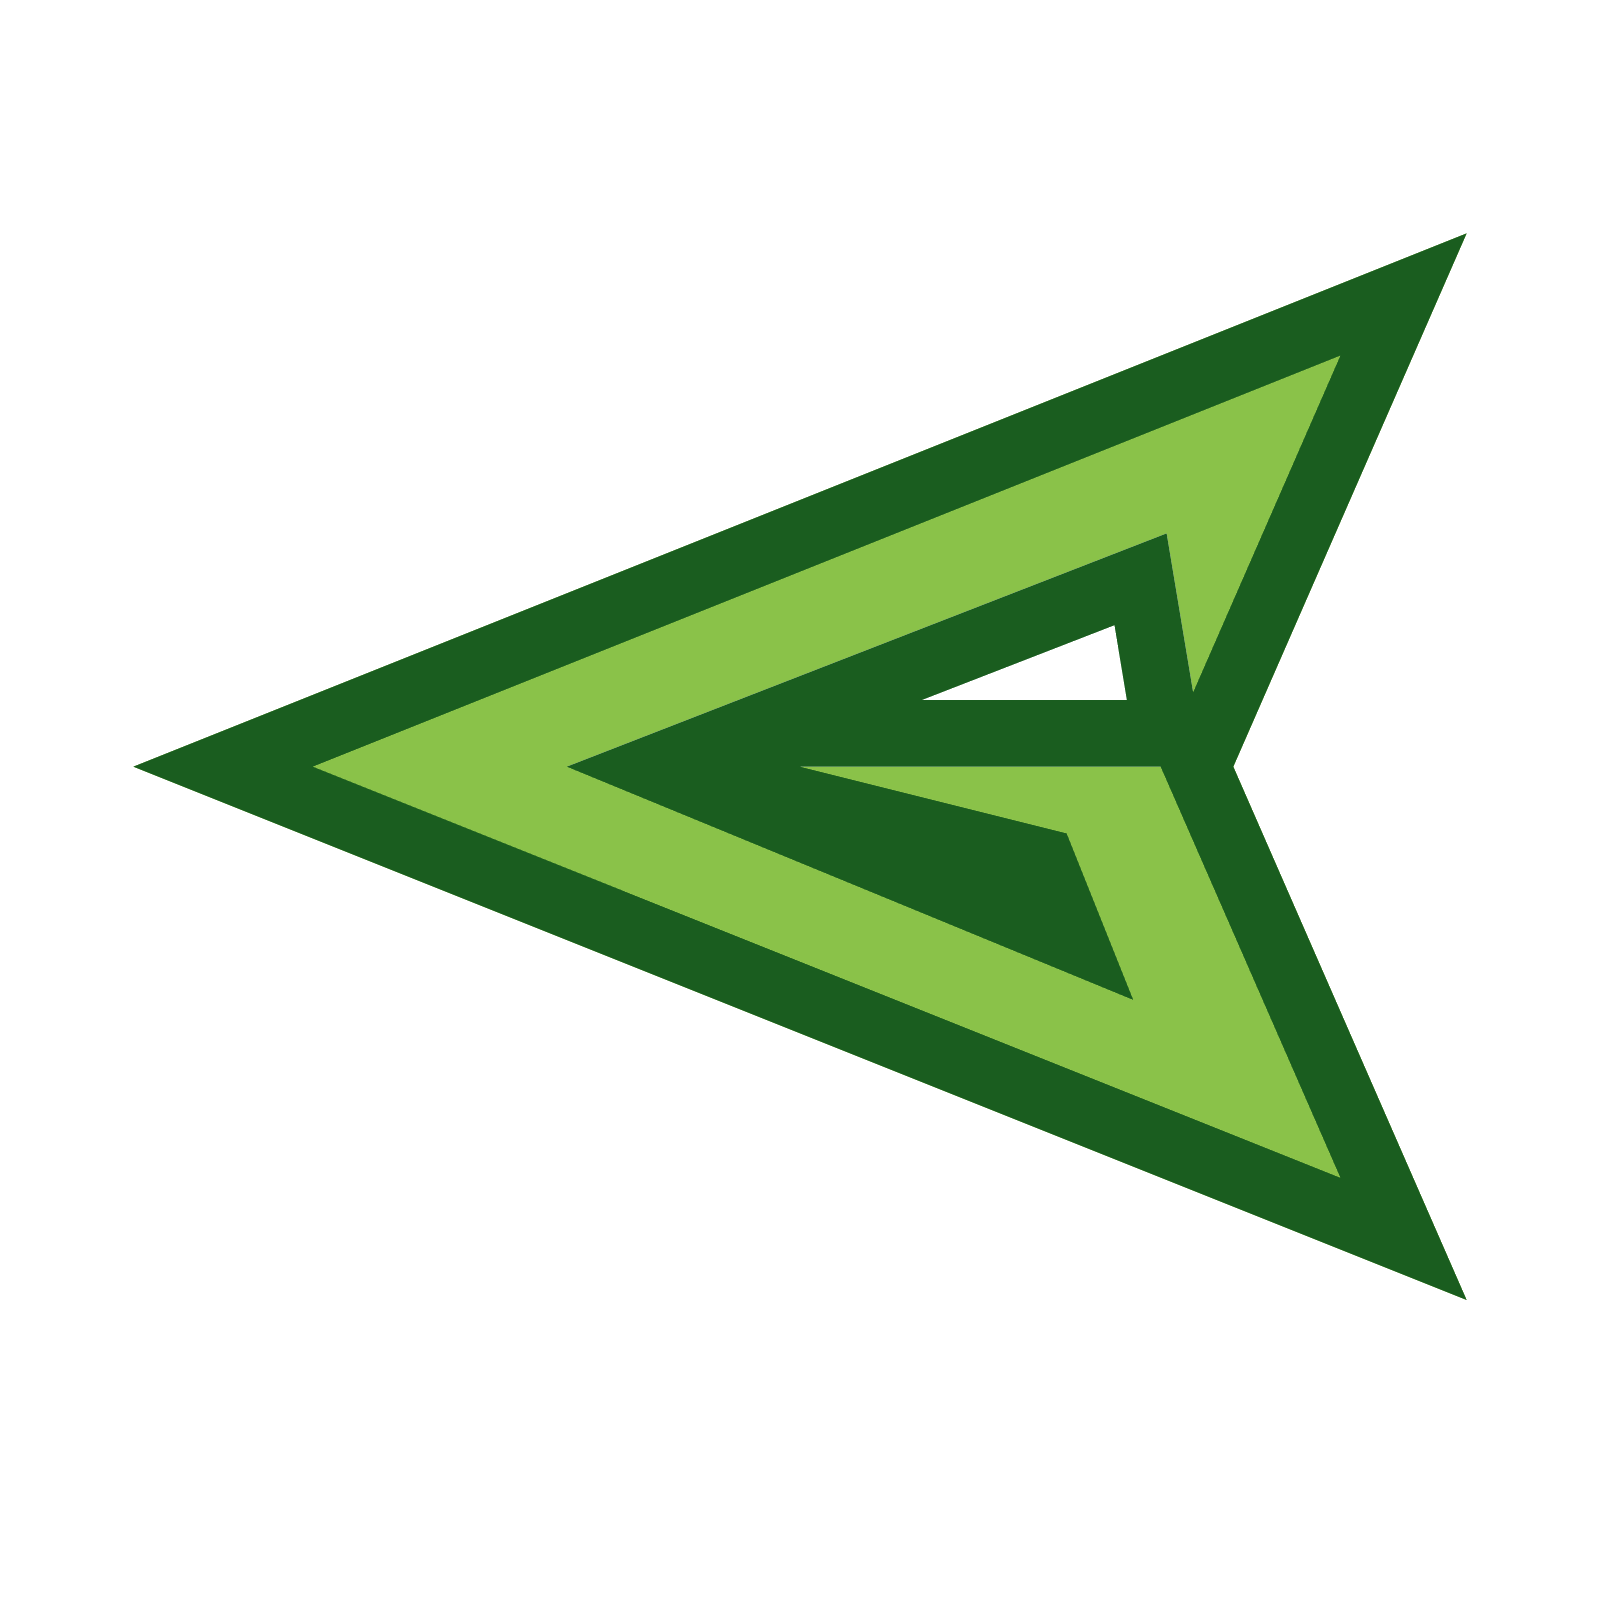 The arrow logo png